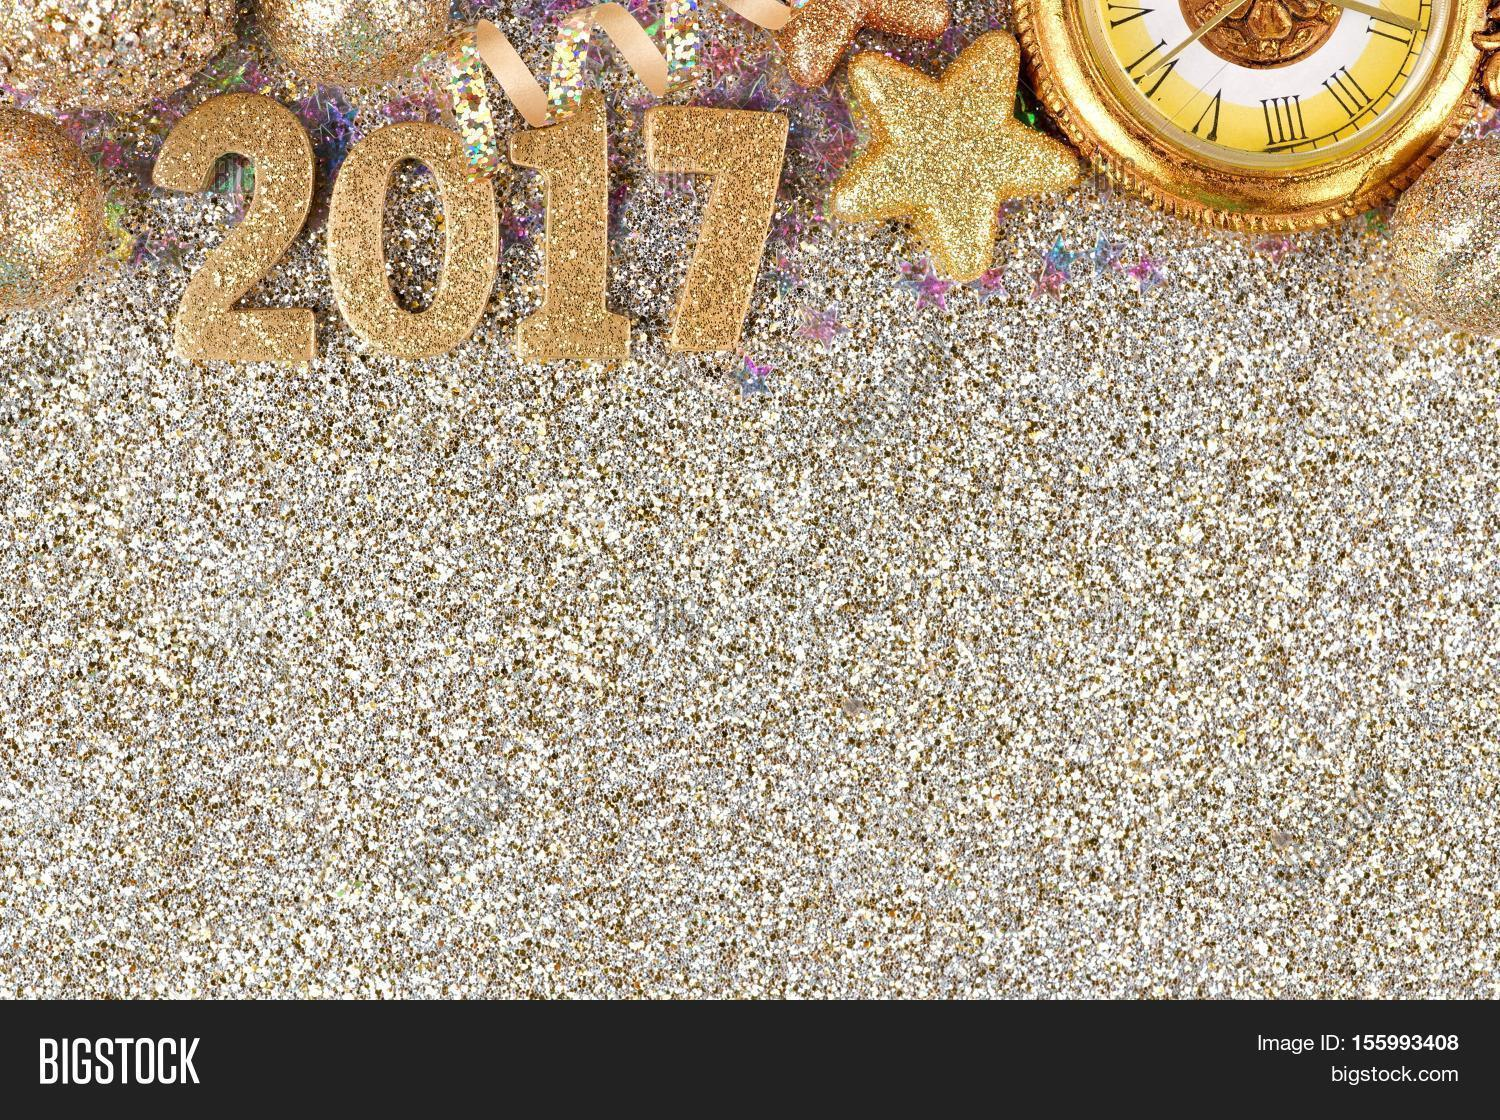 New Years Eve 2017 Golden Numbers With Top Border Of Decorations Over A Glittery Background